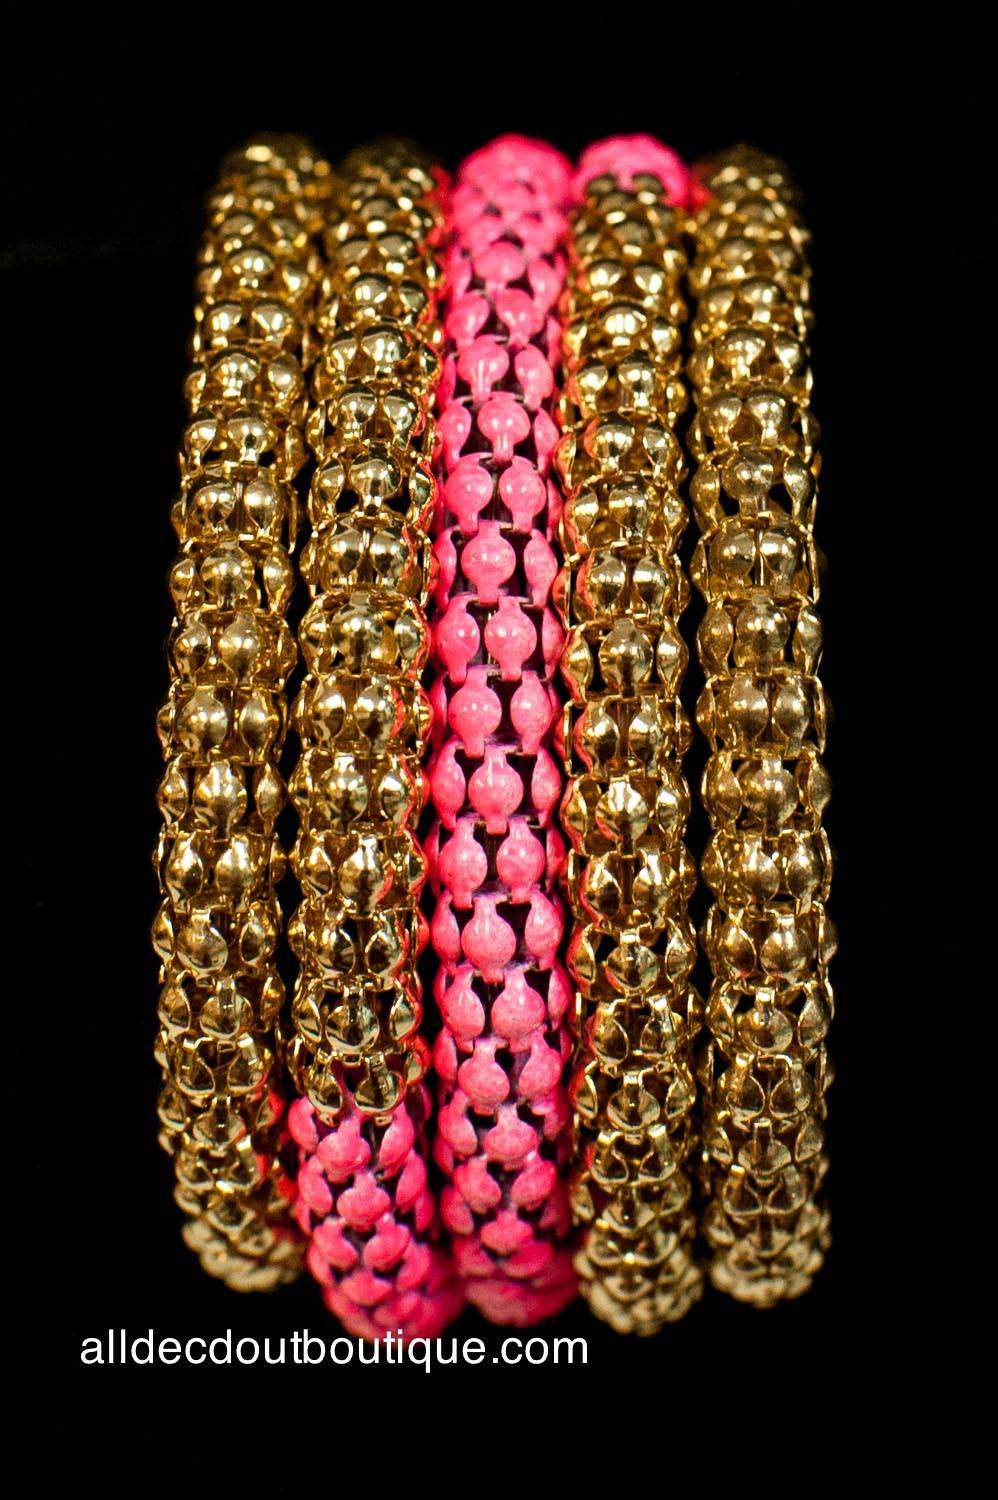 ADO | Gold & Pink Wrap Around Mesh Bracelet - All Decd Out